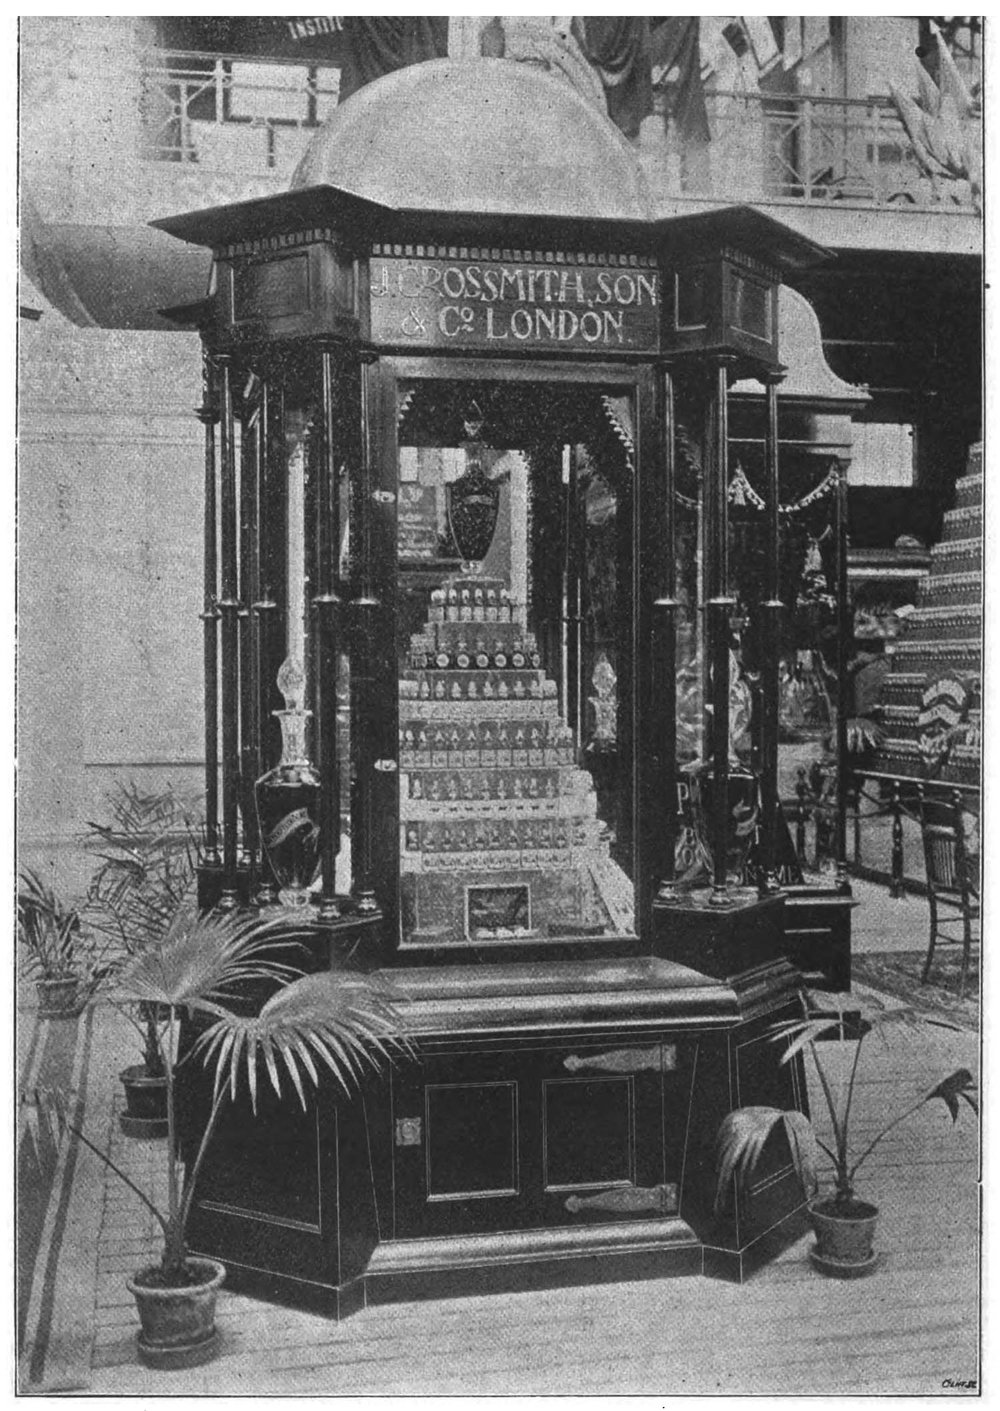 Grossmith display at the Brussels International Exhibition 1897